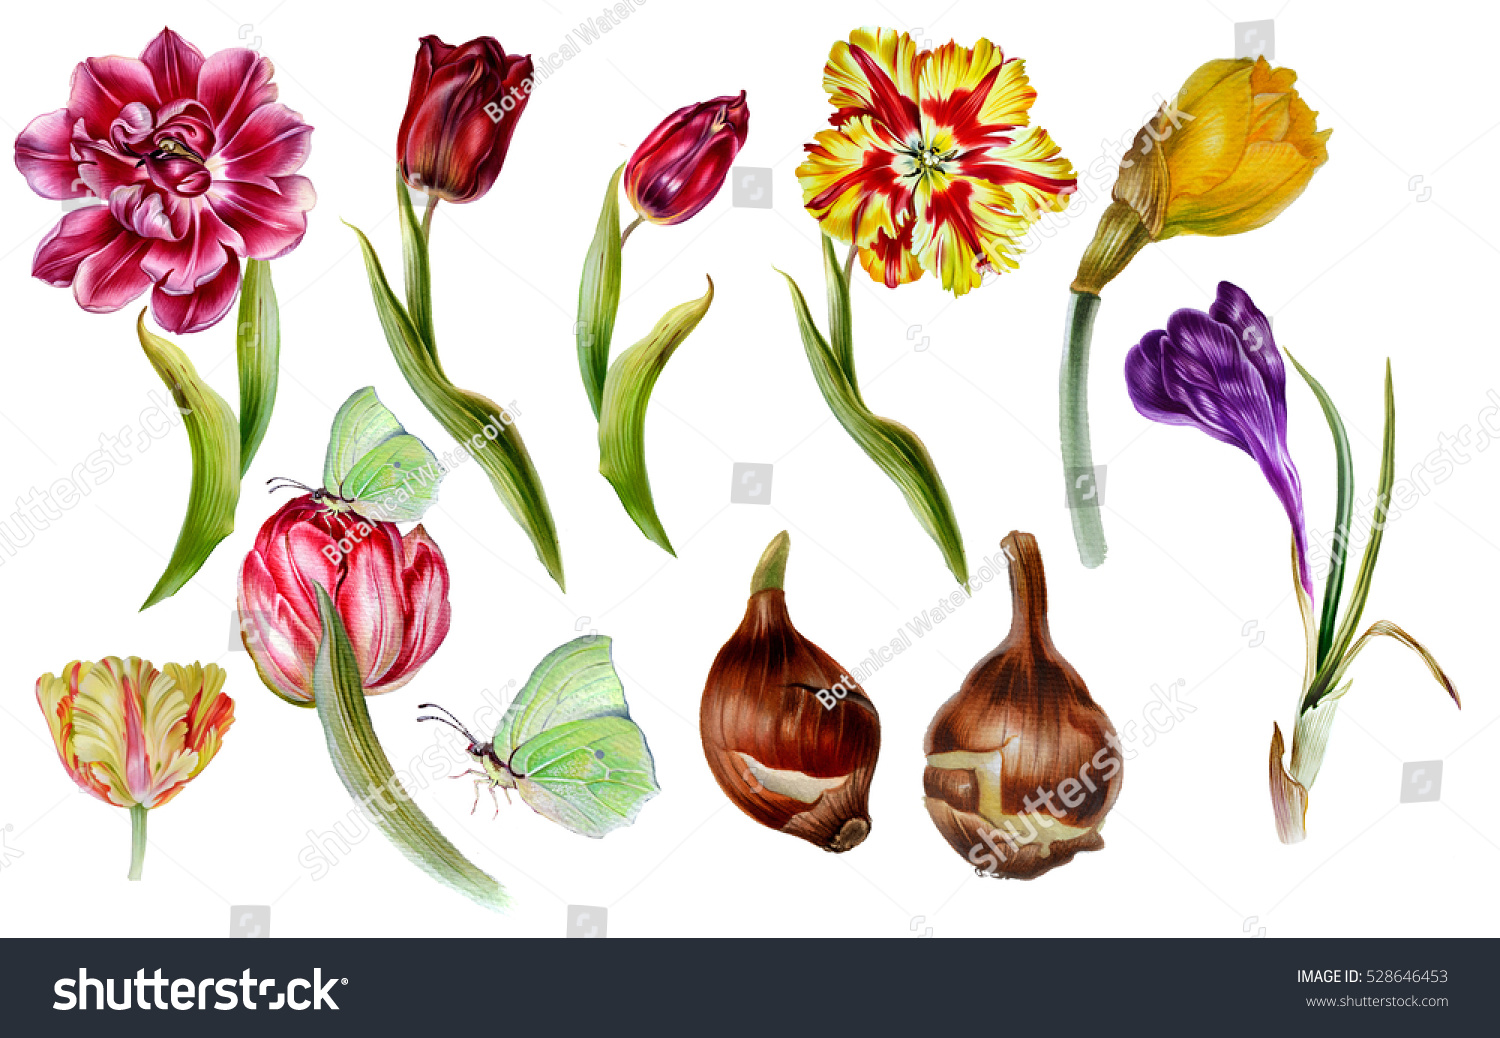 Big set of watercolor spring flowers in botanical at style tulips id 528646453 mightylinksfo